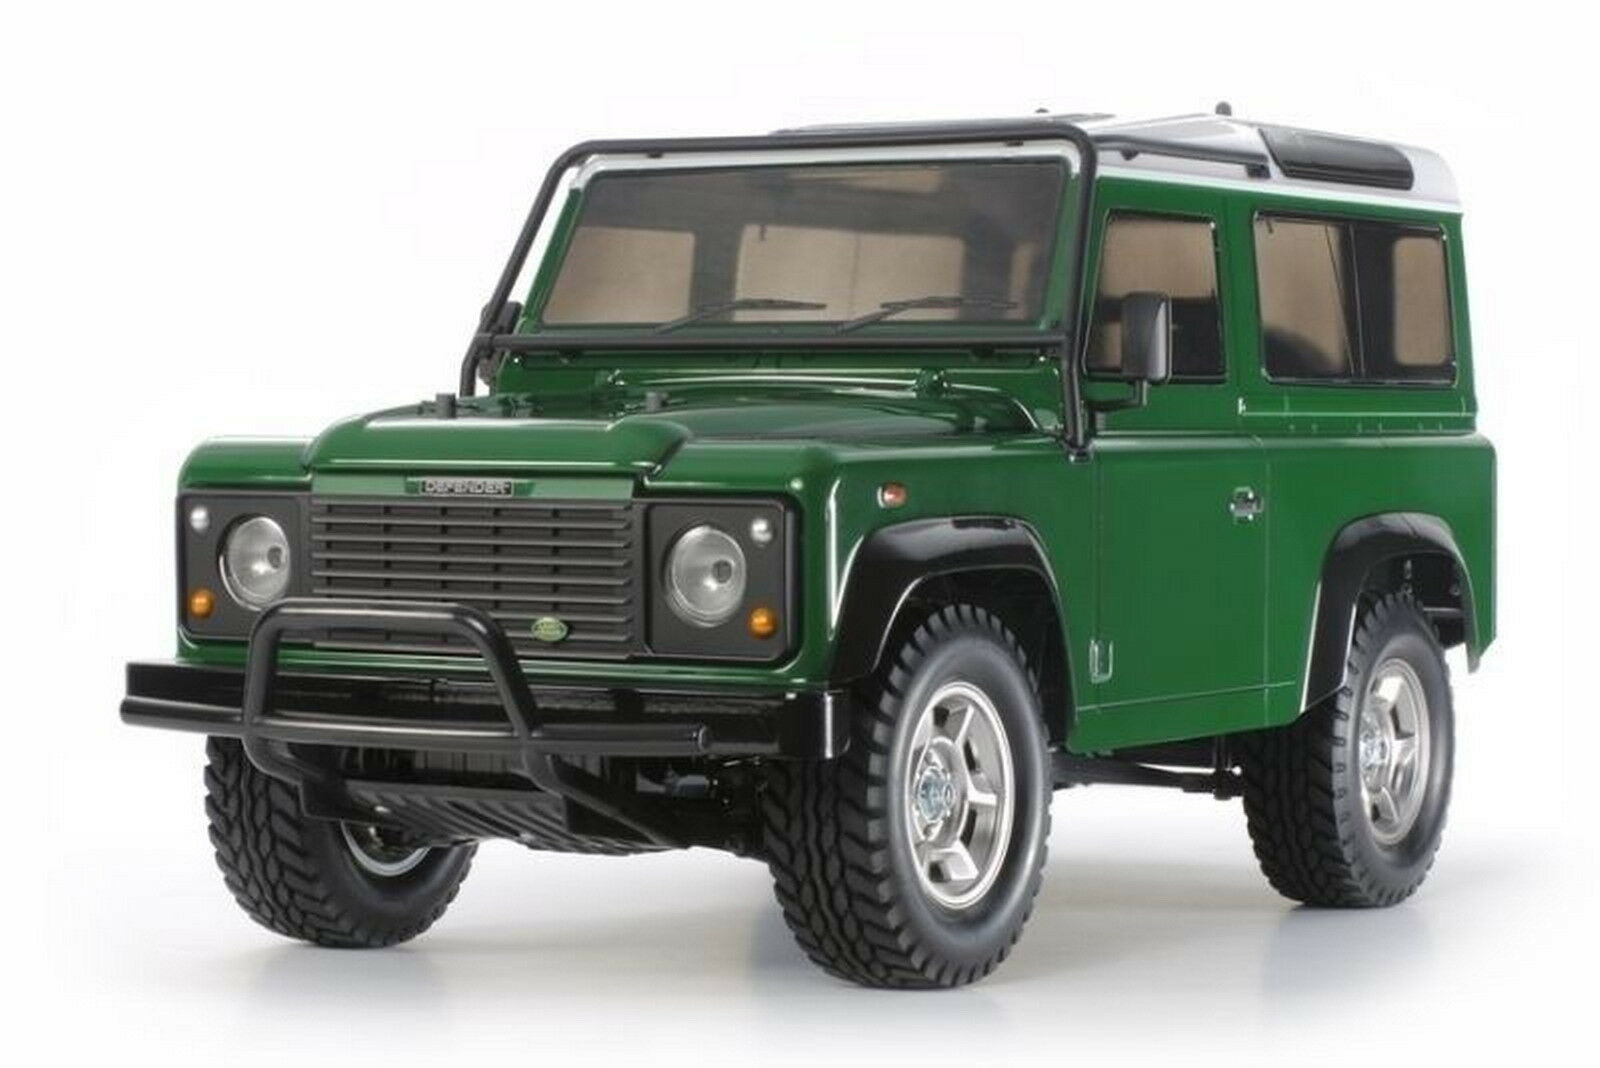 TAMIYA 1 10 RC Land Rover Defender 90 cc-01 Art. nr  300058657 KIT OVP